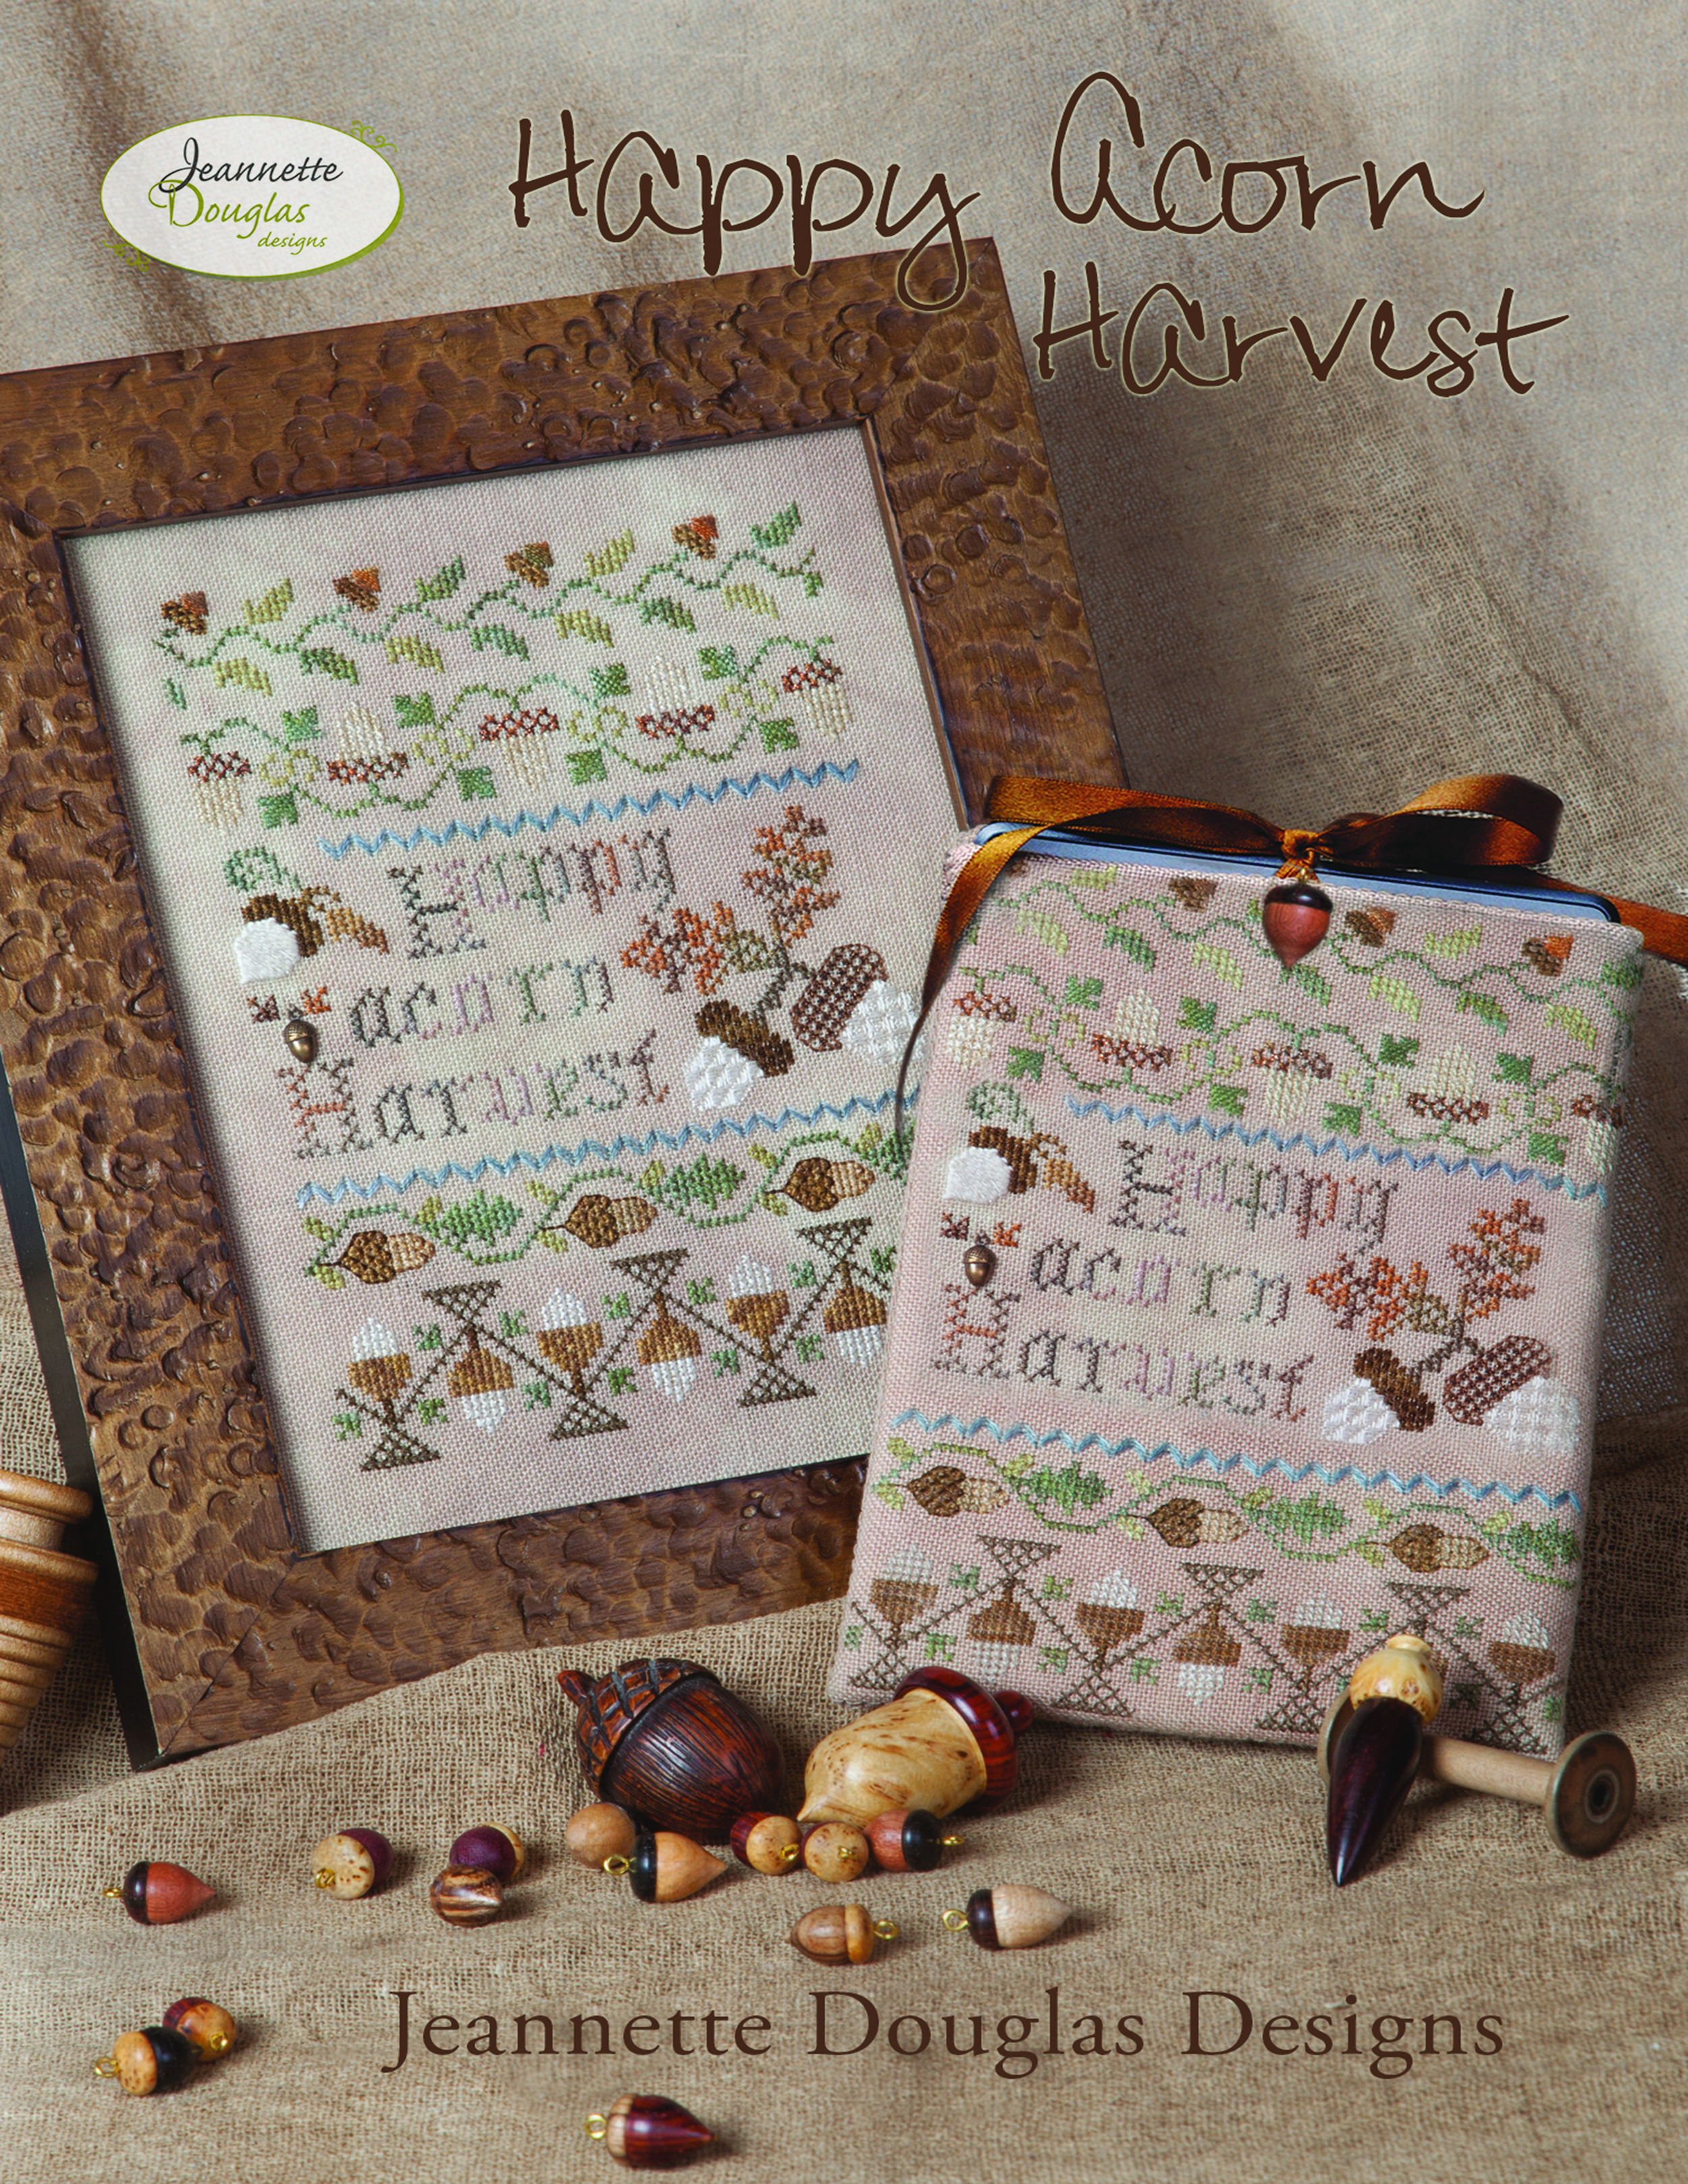 Happy Acorn Harvest Sampler or e-reader cover